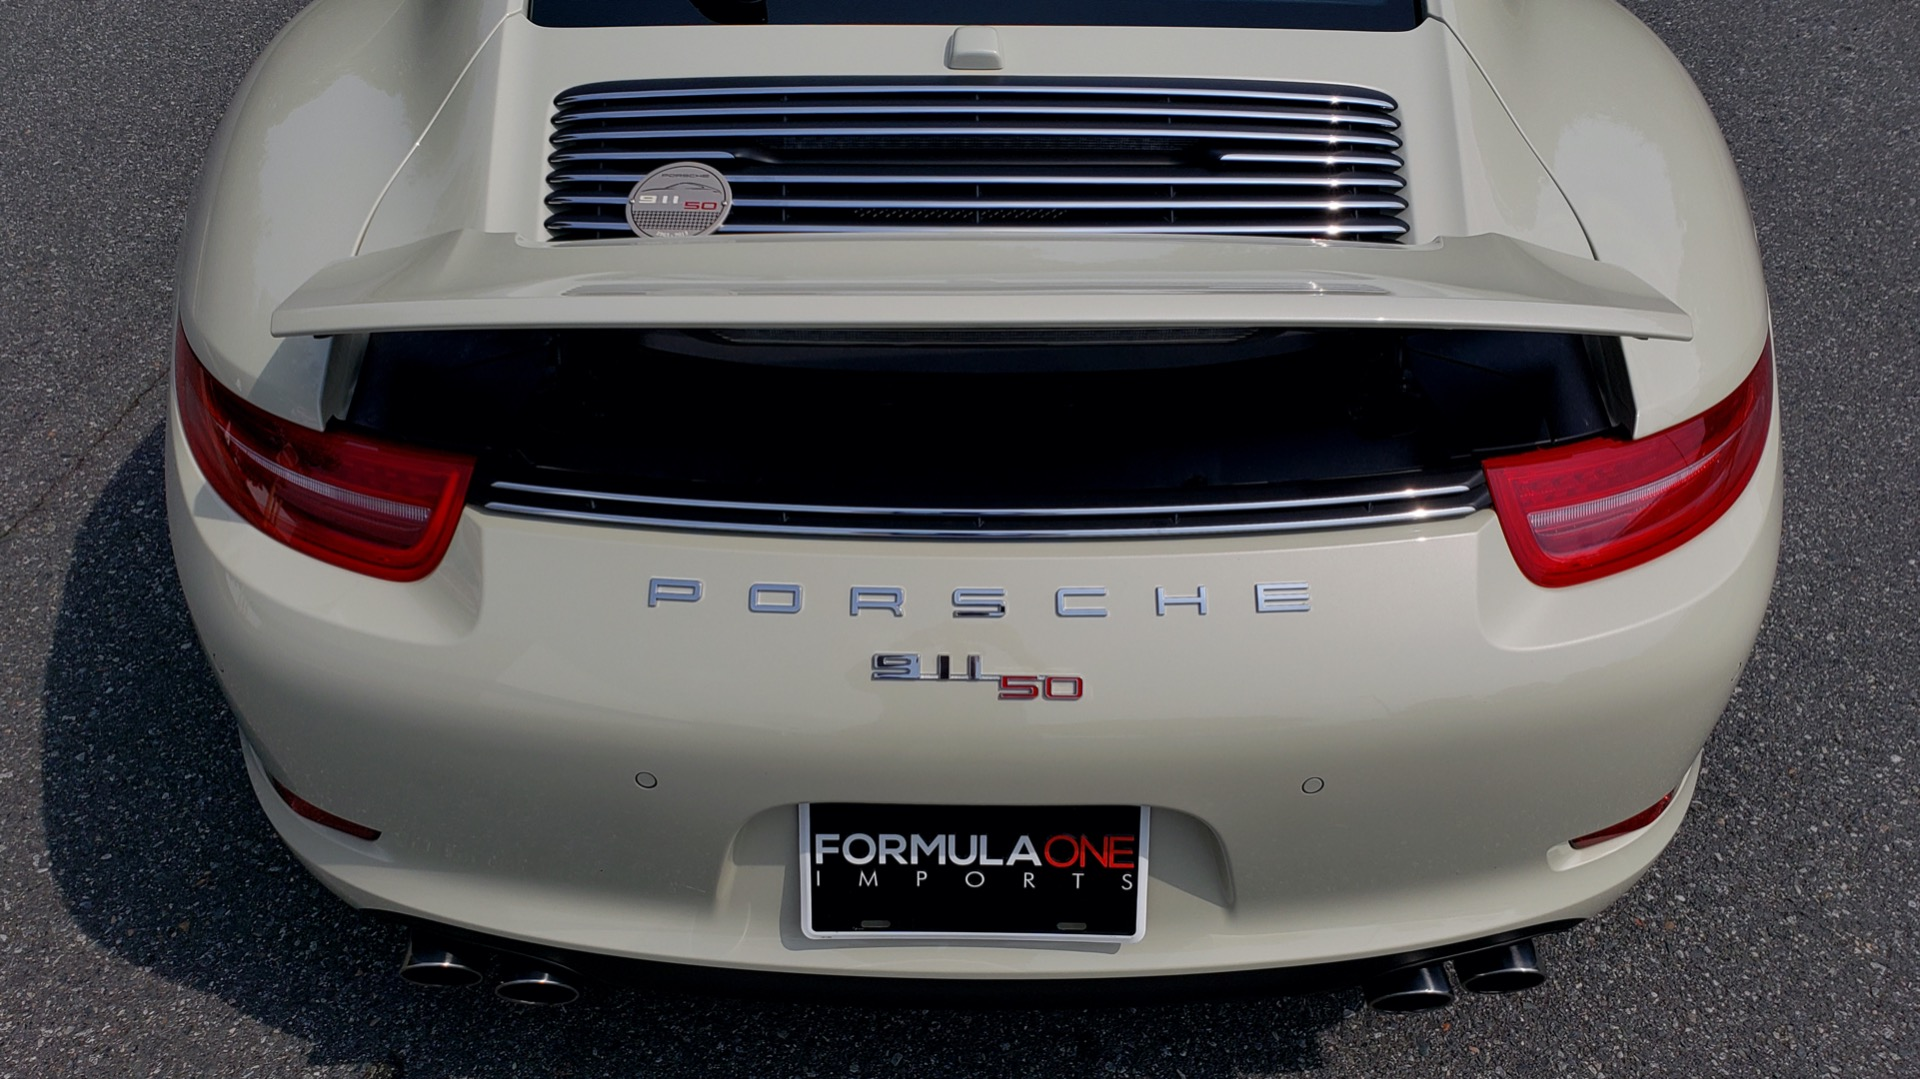 Used 2014 Porsche 911 50TH ANNIVERSARY EDITION NO. 0423 / 7-SPD MAN / NAV / BOSE for sale $118,999 at Formula One Imports in Charlotte NC 28227 25